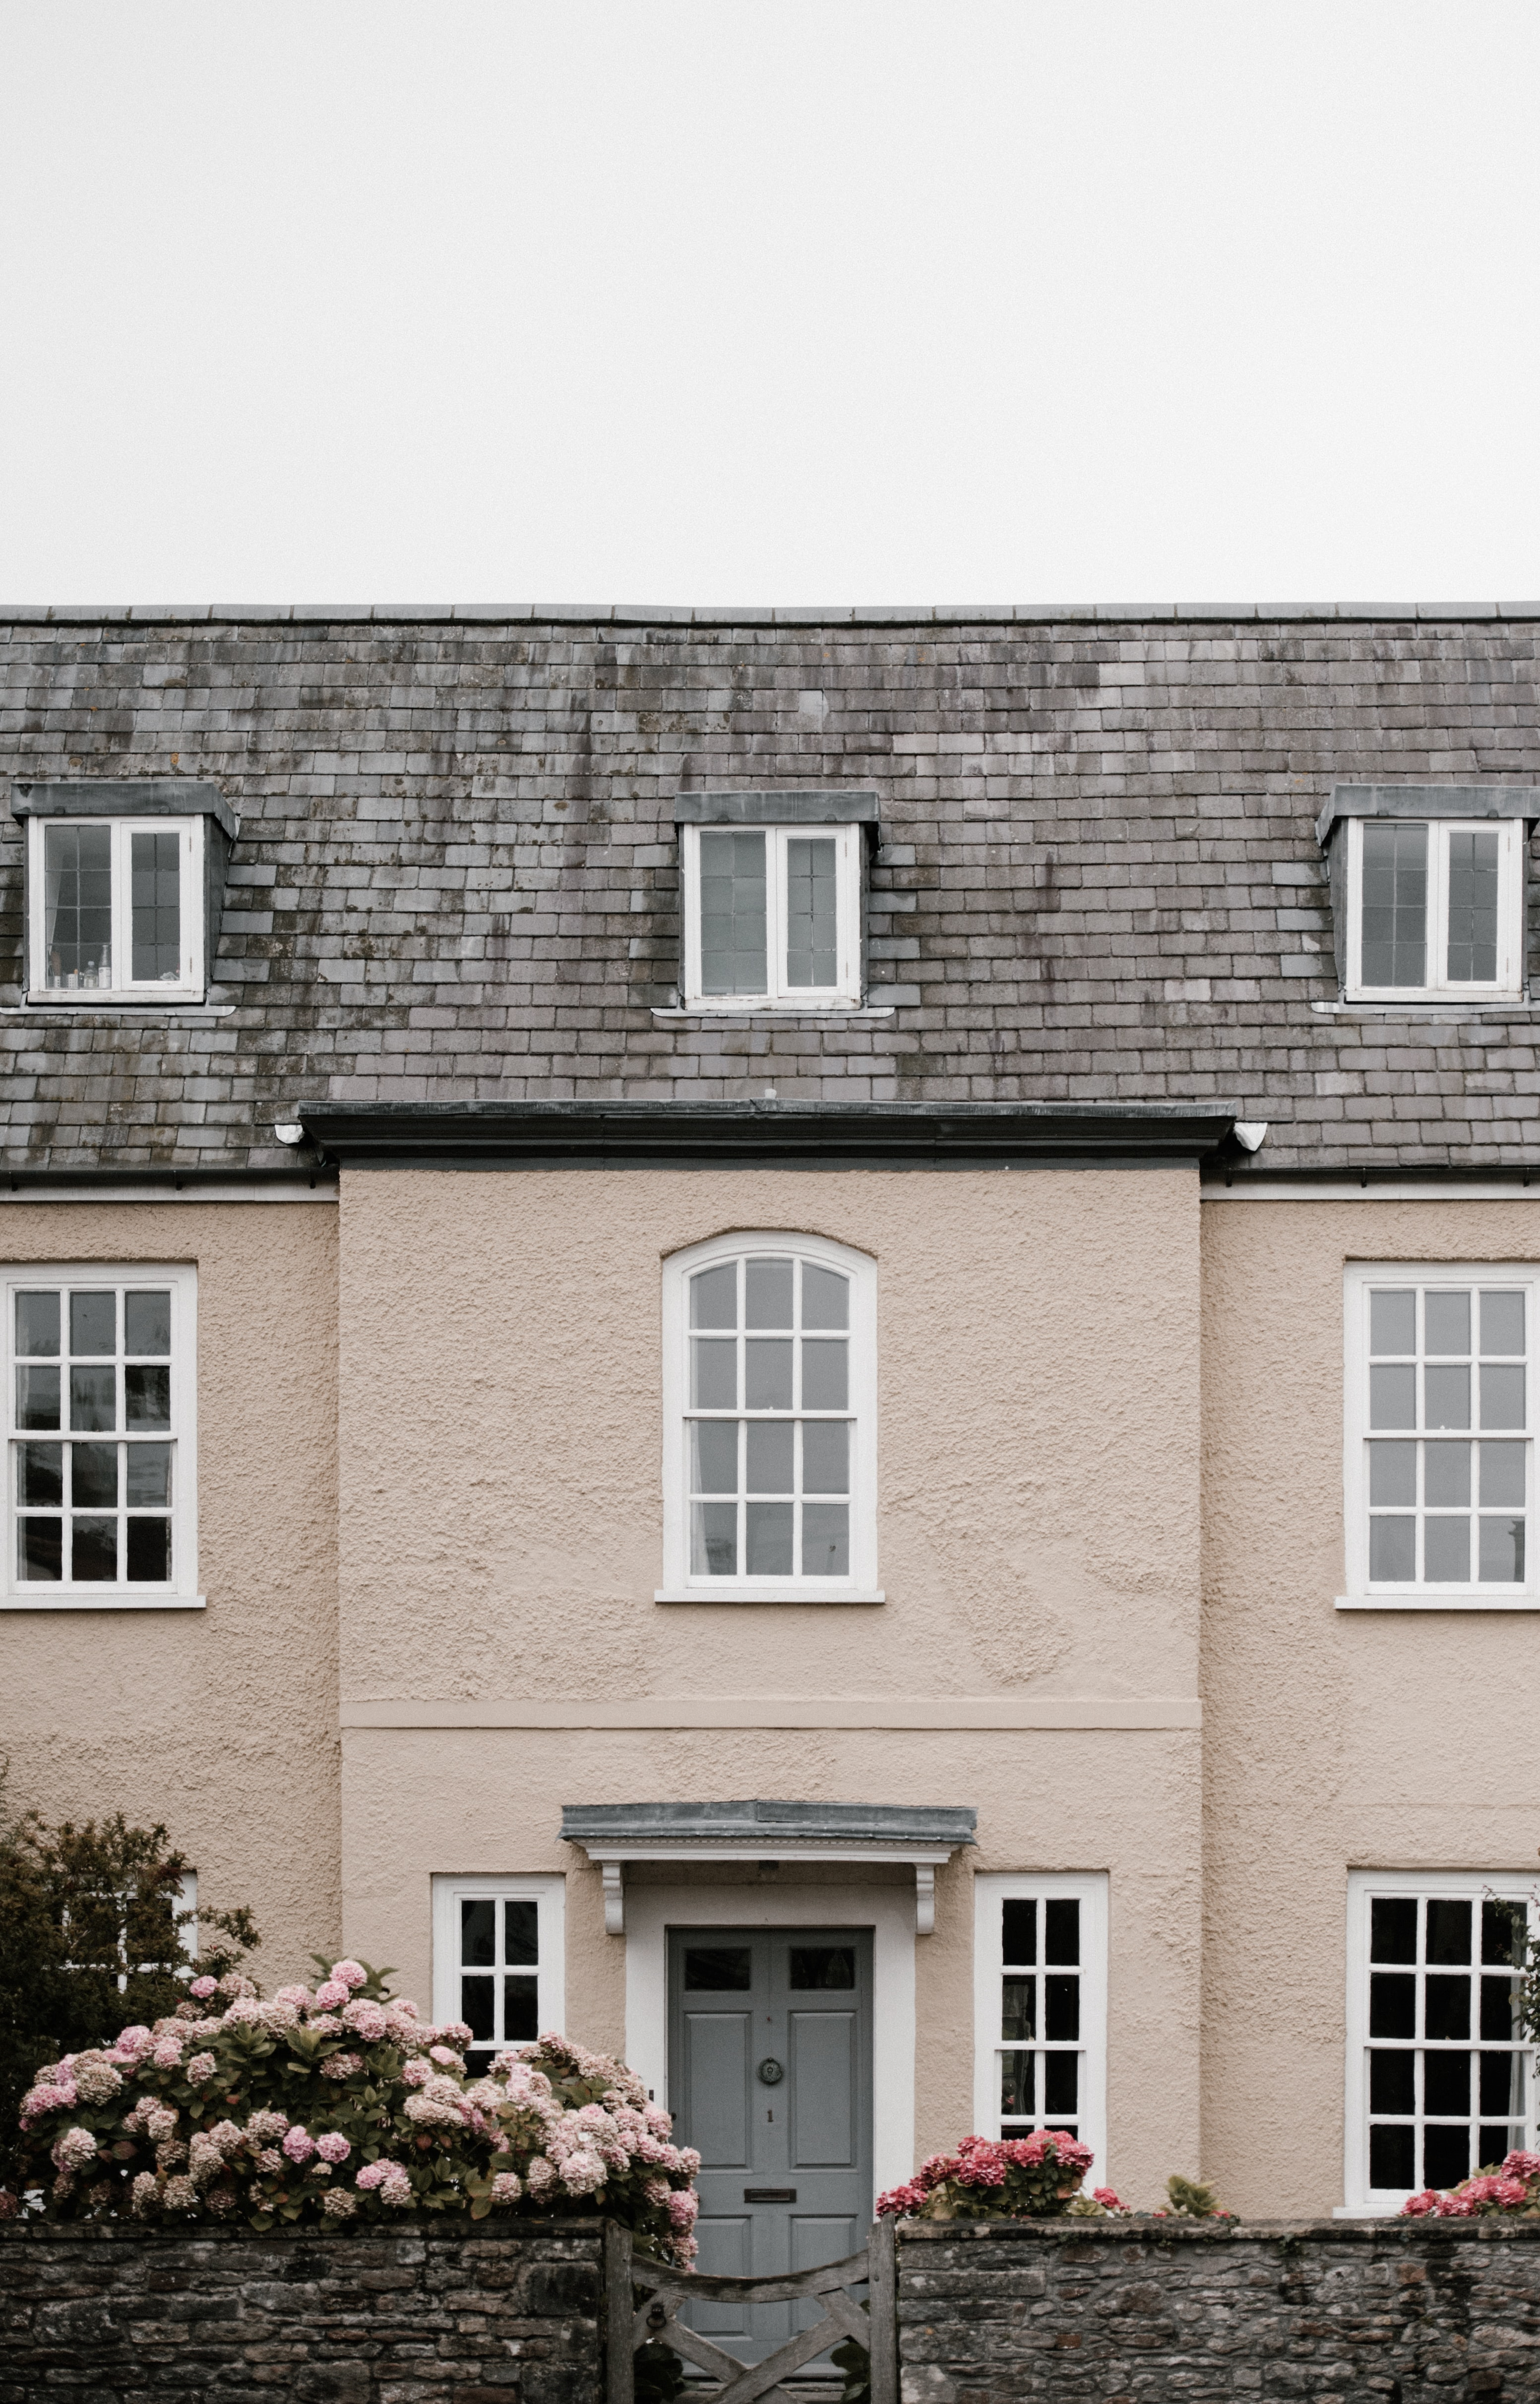 Concrete Roof Tiles versus Clay Roof Tiles — Which Are Better?